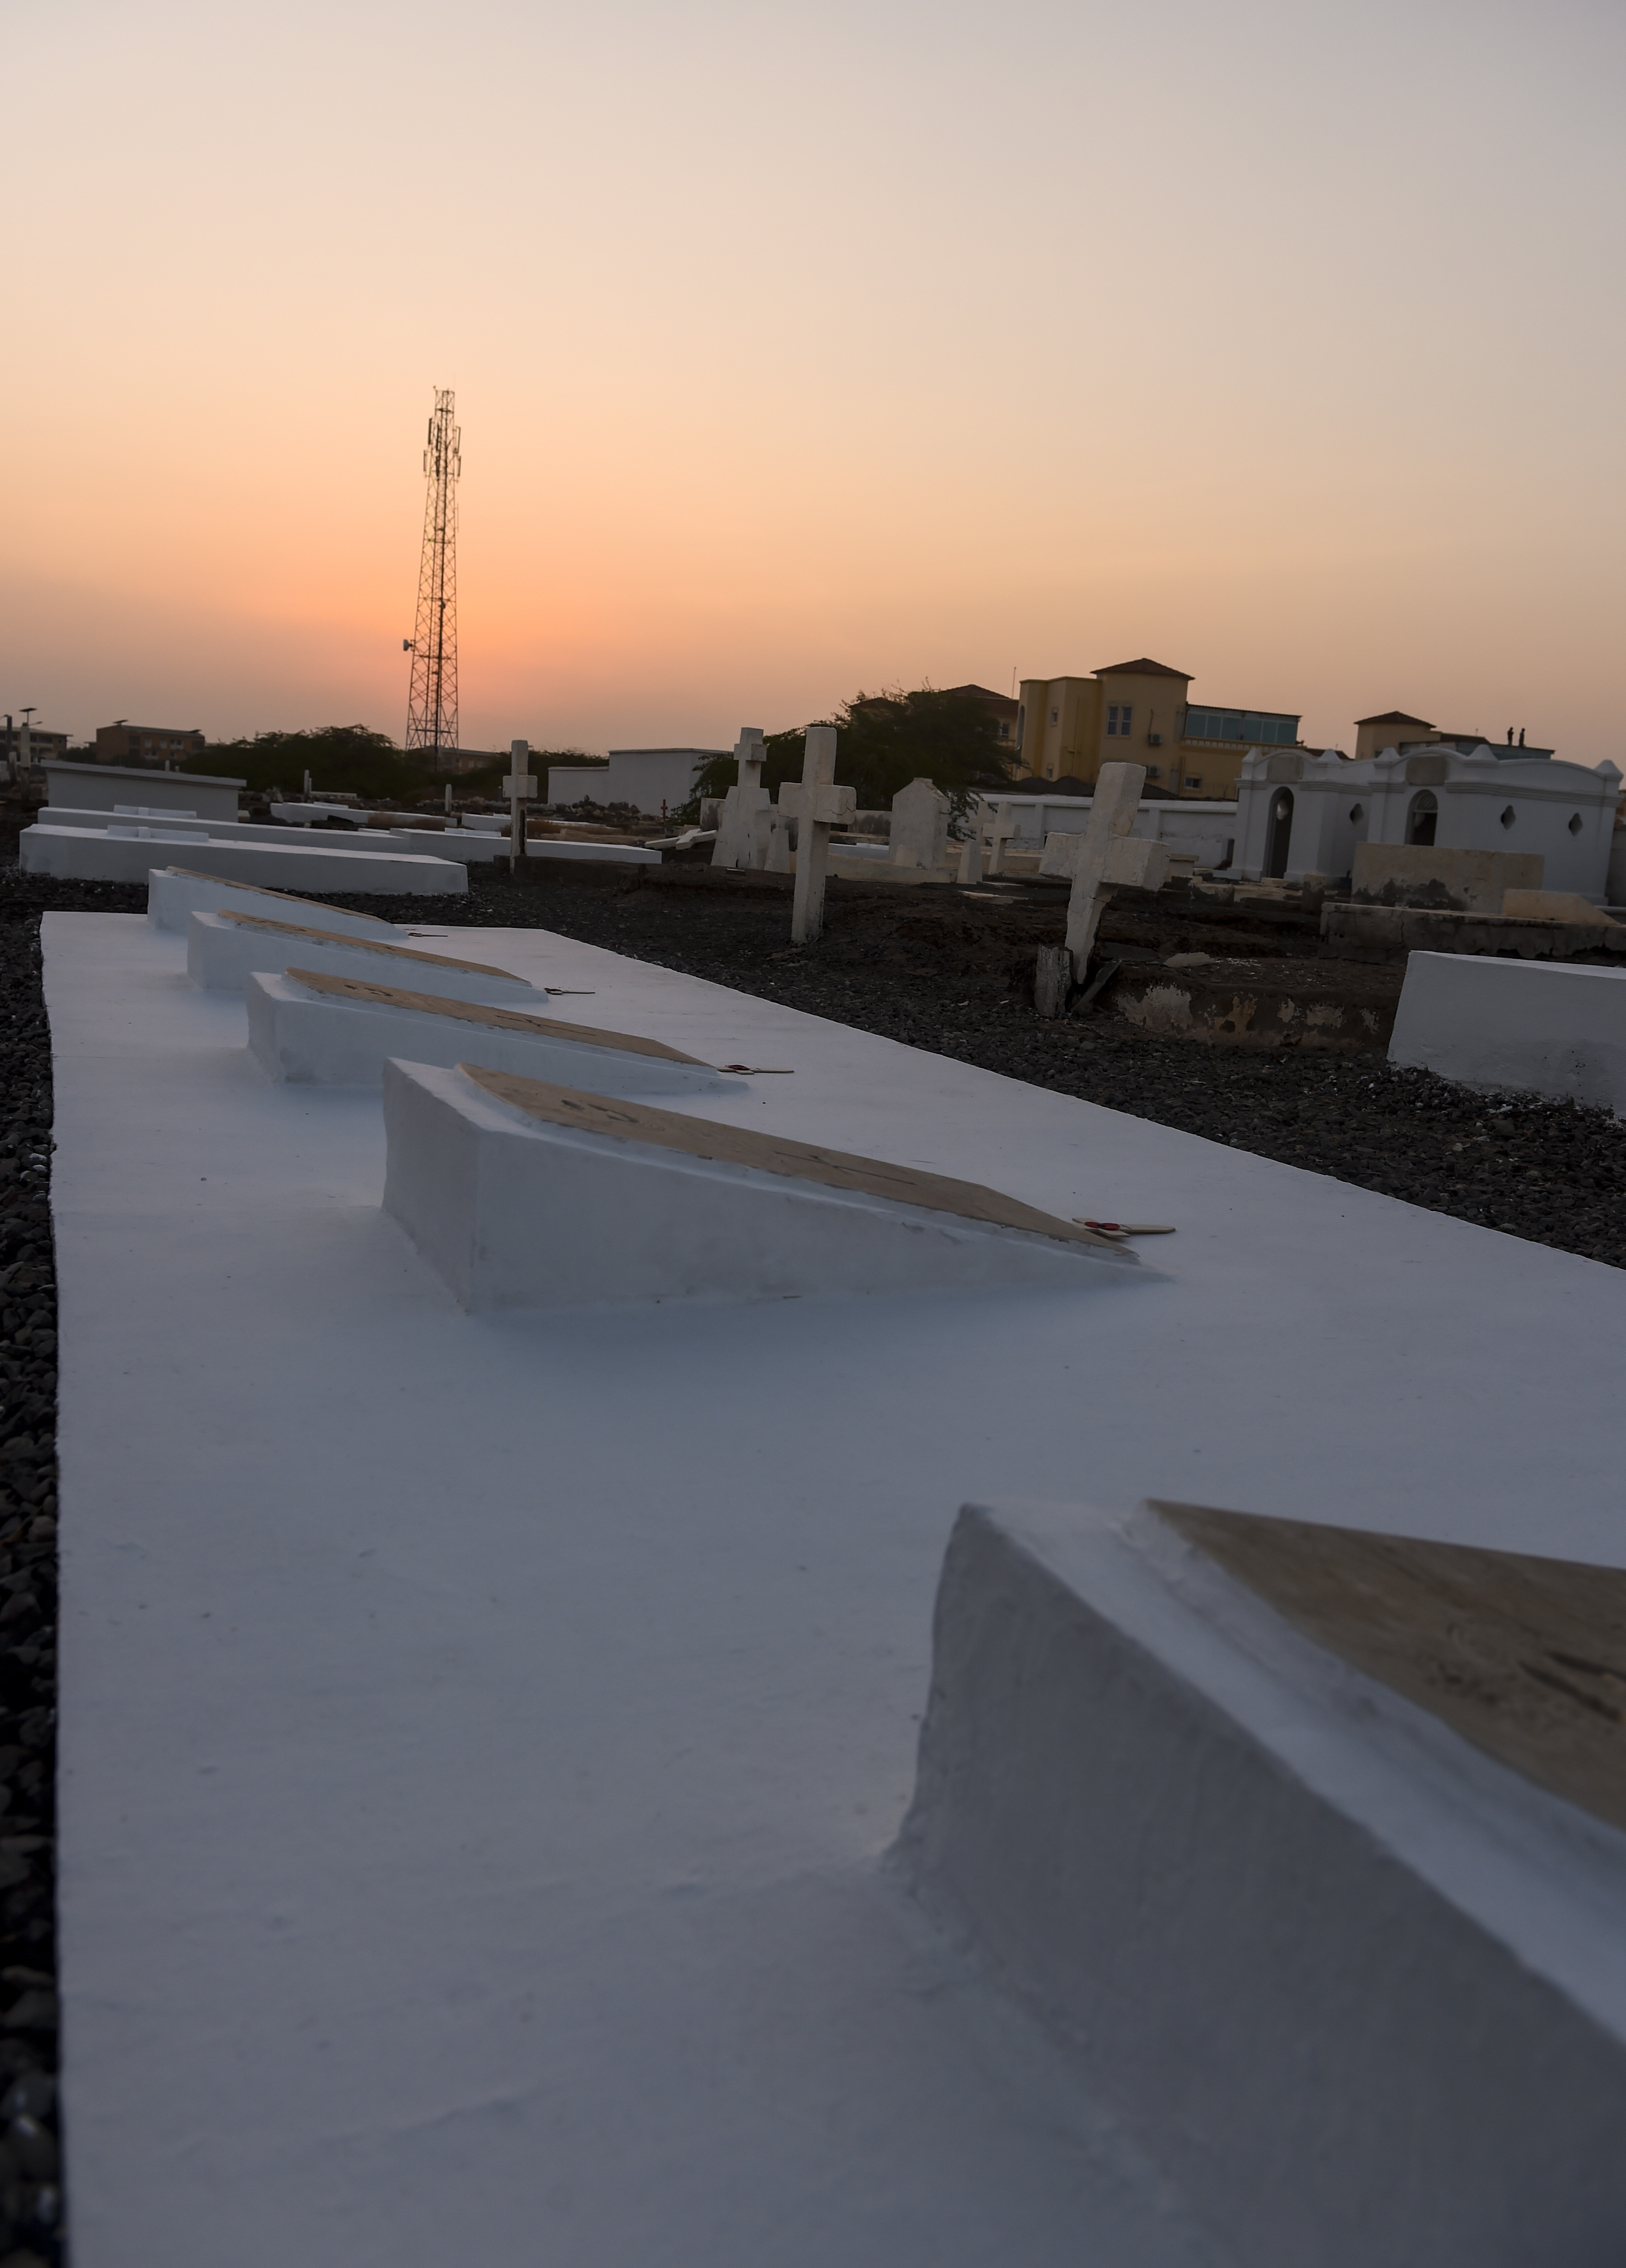 The sun sets over graves at the Djibouti New European Cemetery near Camp Lemonnier, Djibouti, Nov. 7, 2017.  During a Remembrance Day ceremony, service members from Combined Joint Task Force - Horn of Africa joined other representatives of the United States, the United Kingdom, Russia, the Commonwealth, and the European Union as they honored service members who gave their lives during wartime. (U.S. Air Force photo by Staff Sgt. Timothy Moore)